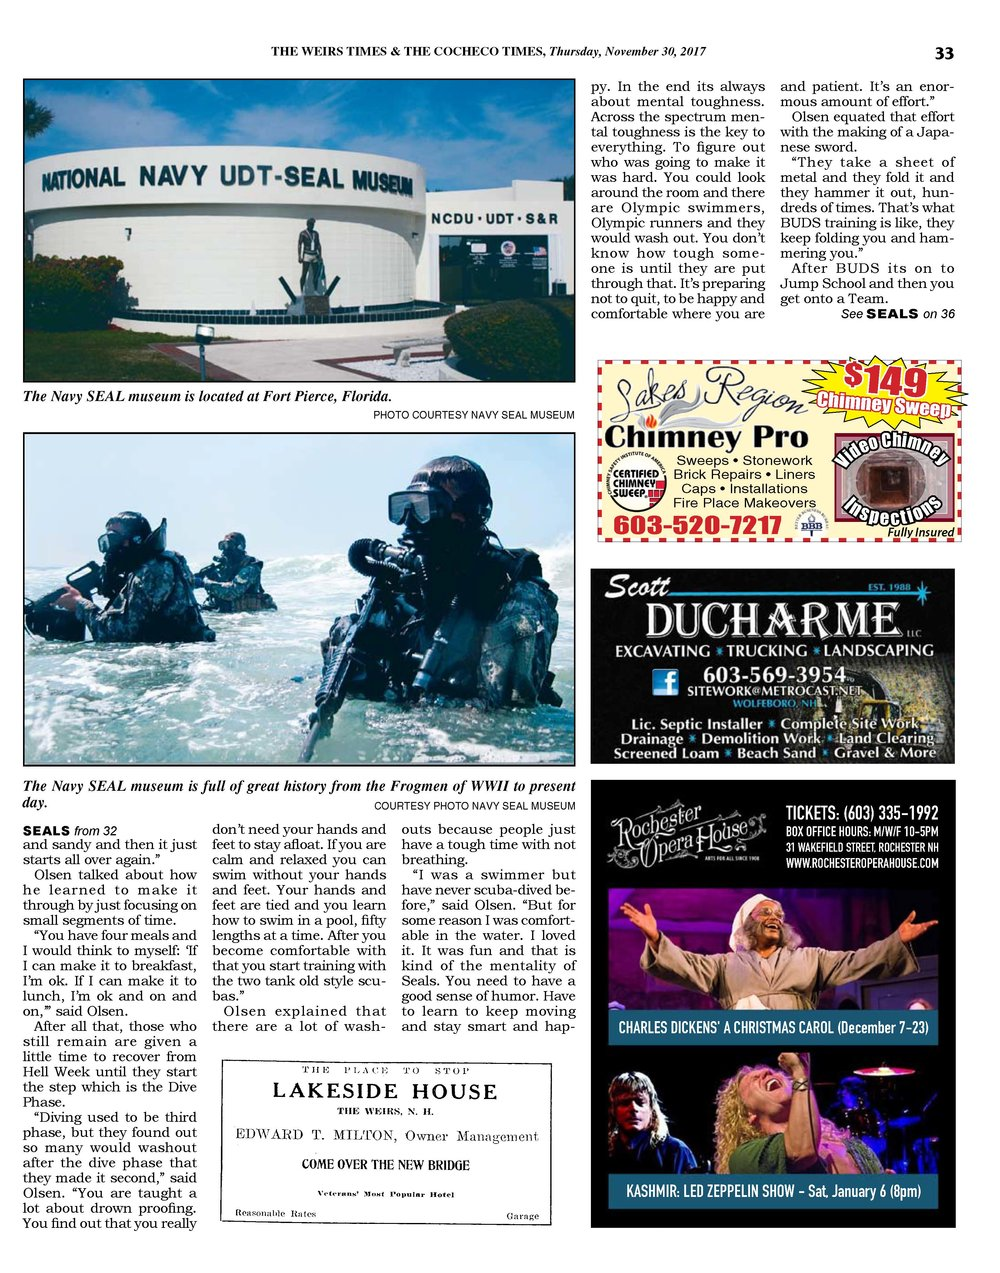 SWAM - Weirs Times - November 30, 2017_Page_3.jpg